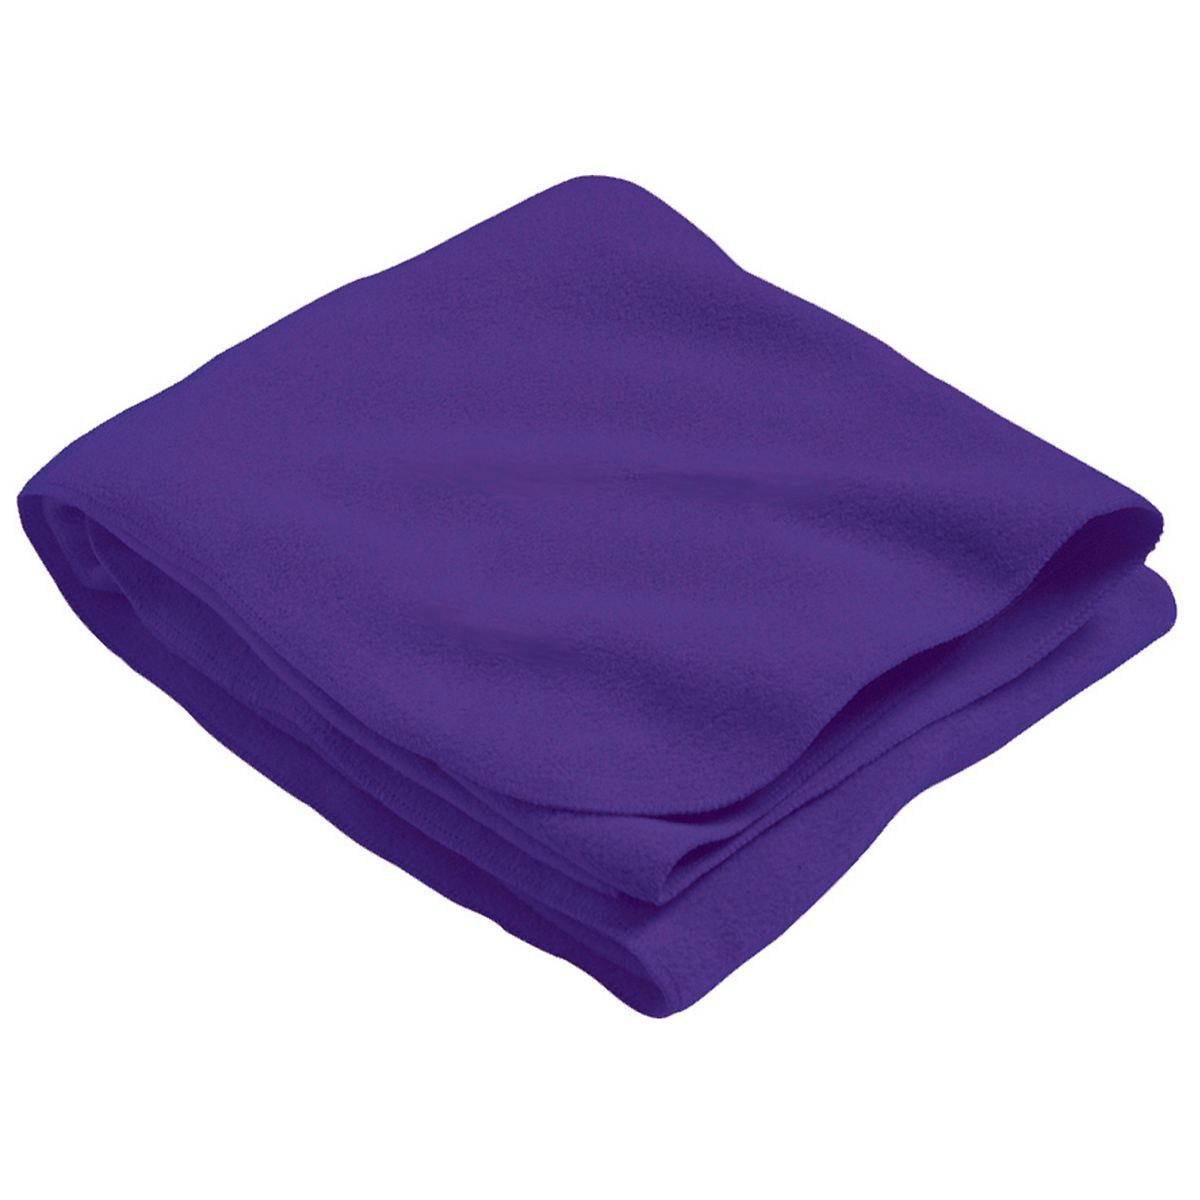 Stadium Blanket - PURPLE